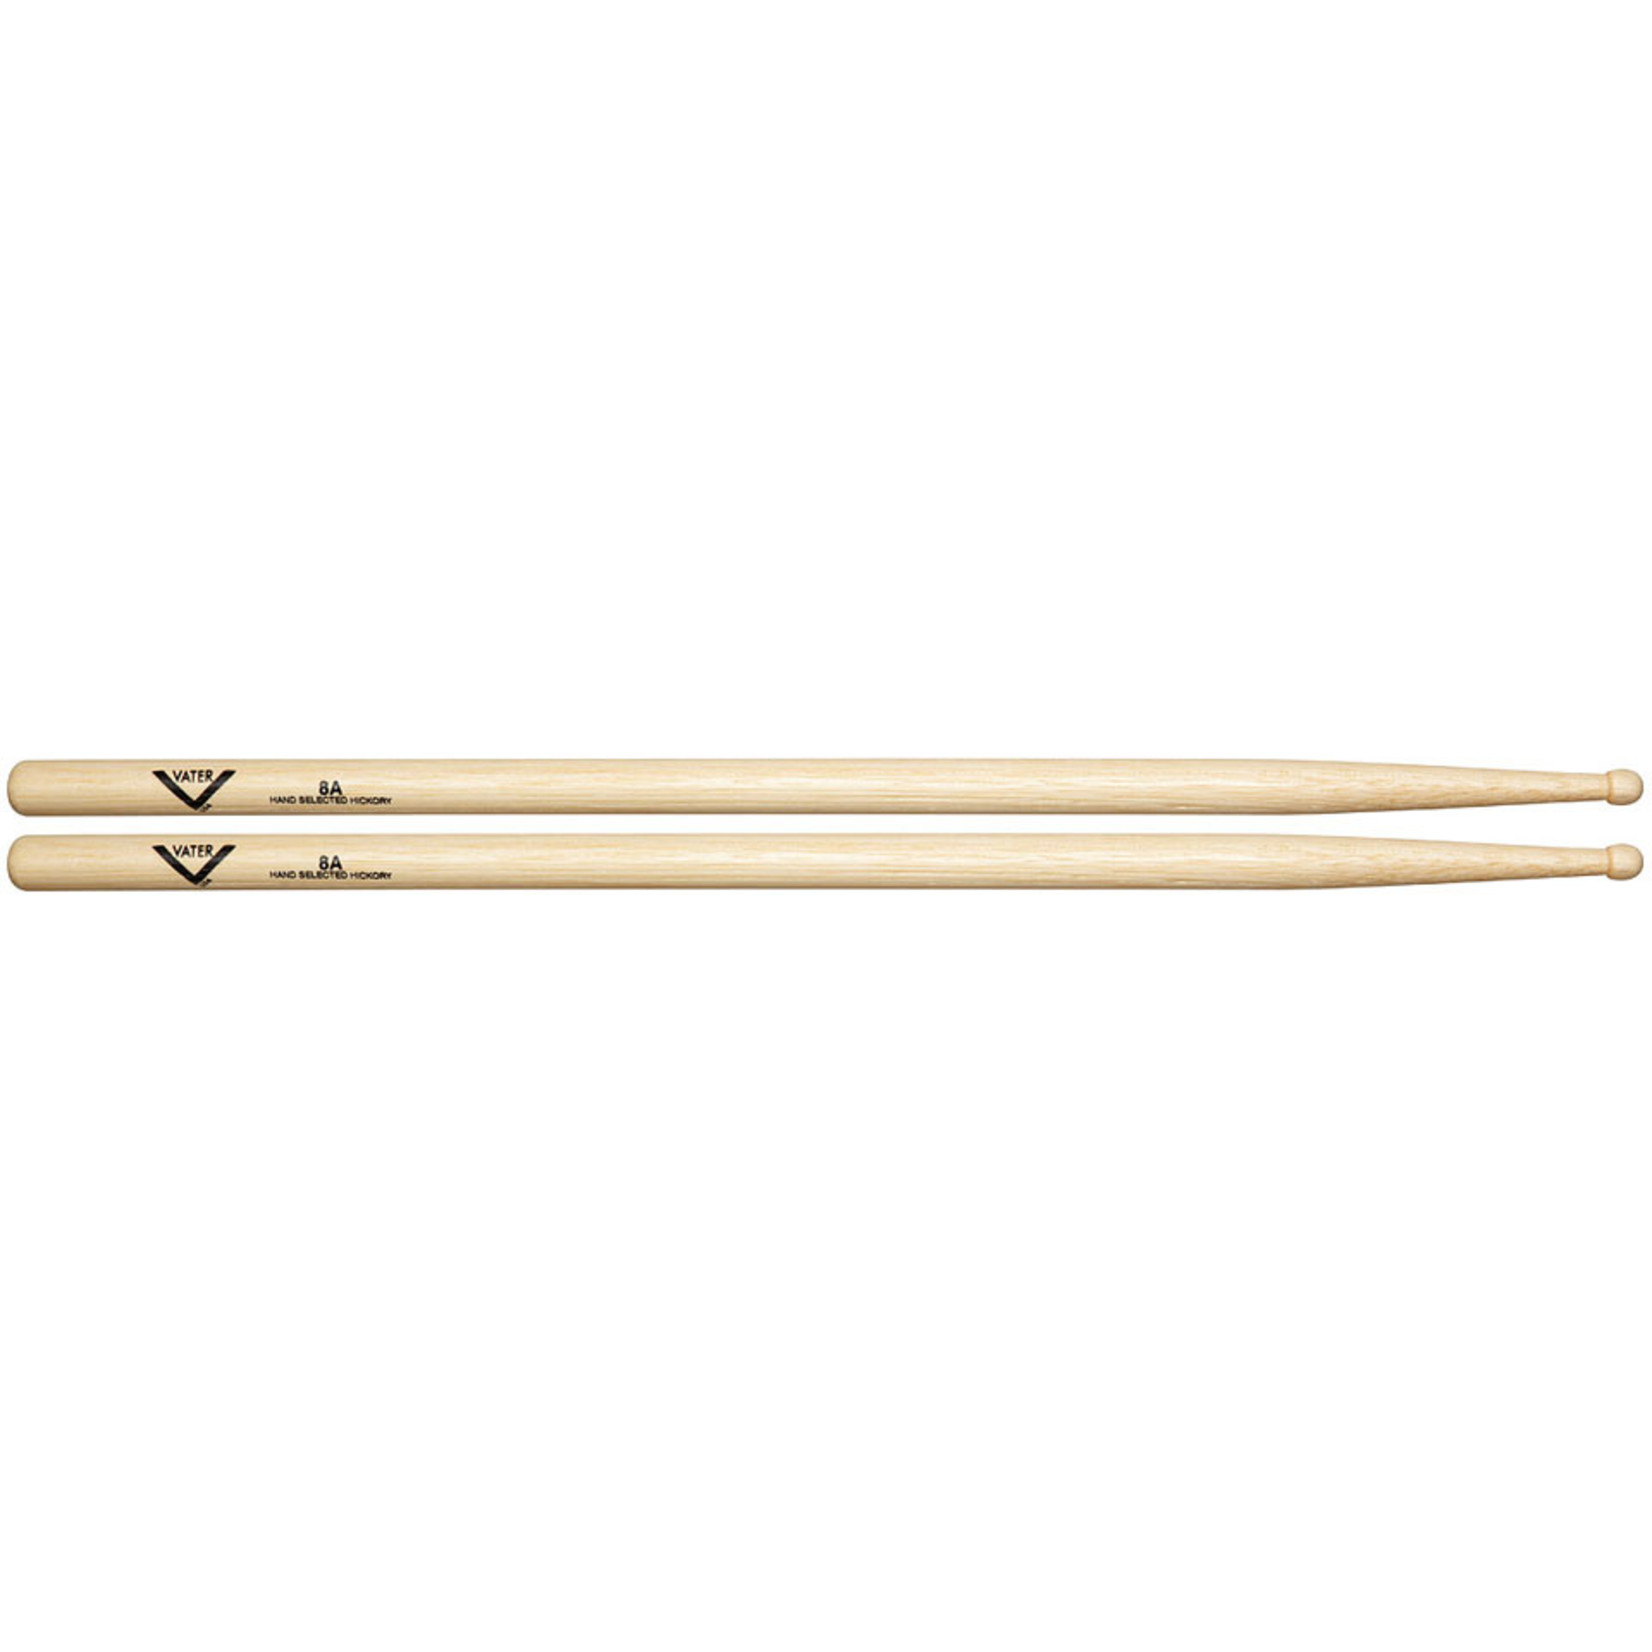 Vater Vater 8A